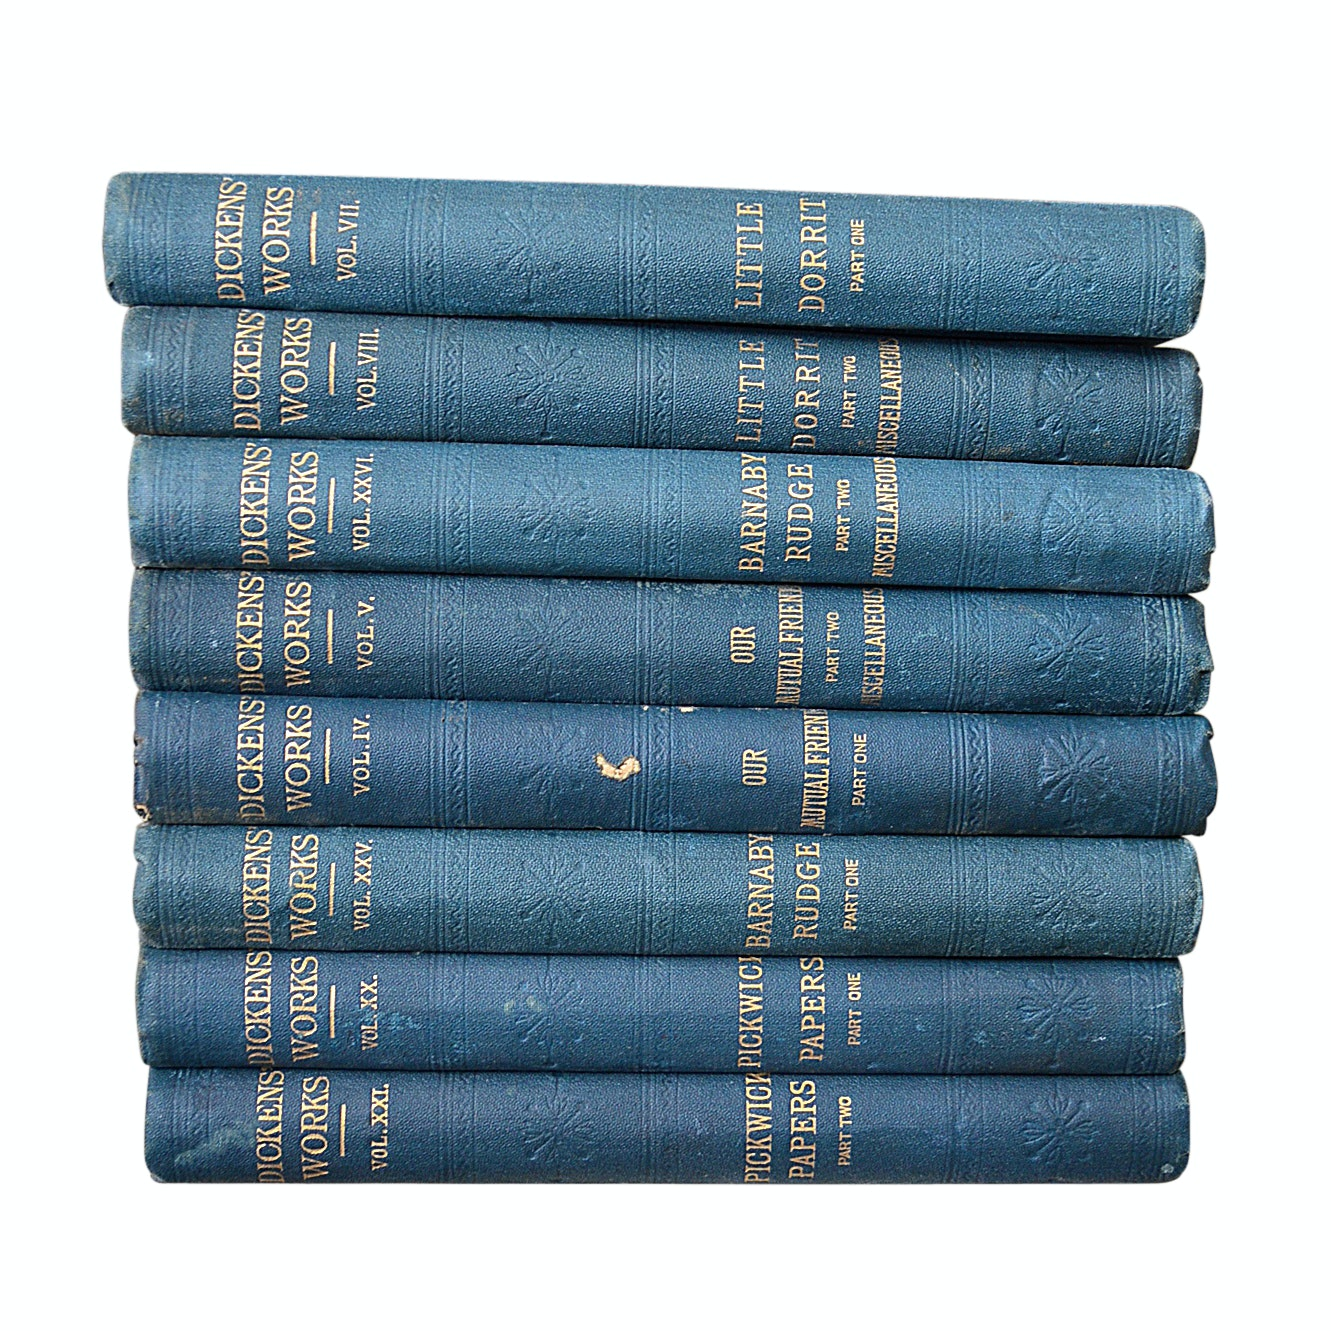 """The Works of Charles Dickens"" 10 Volume Set"